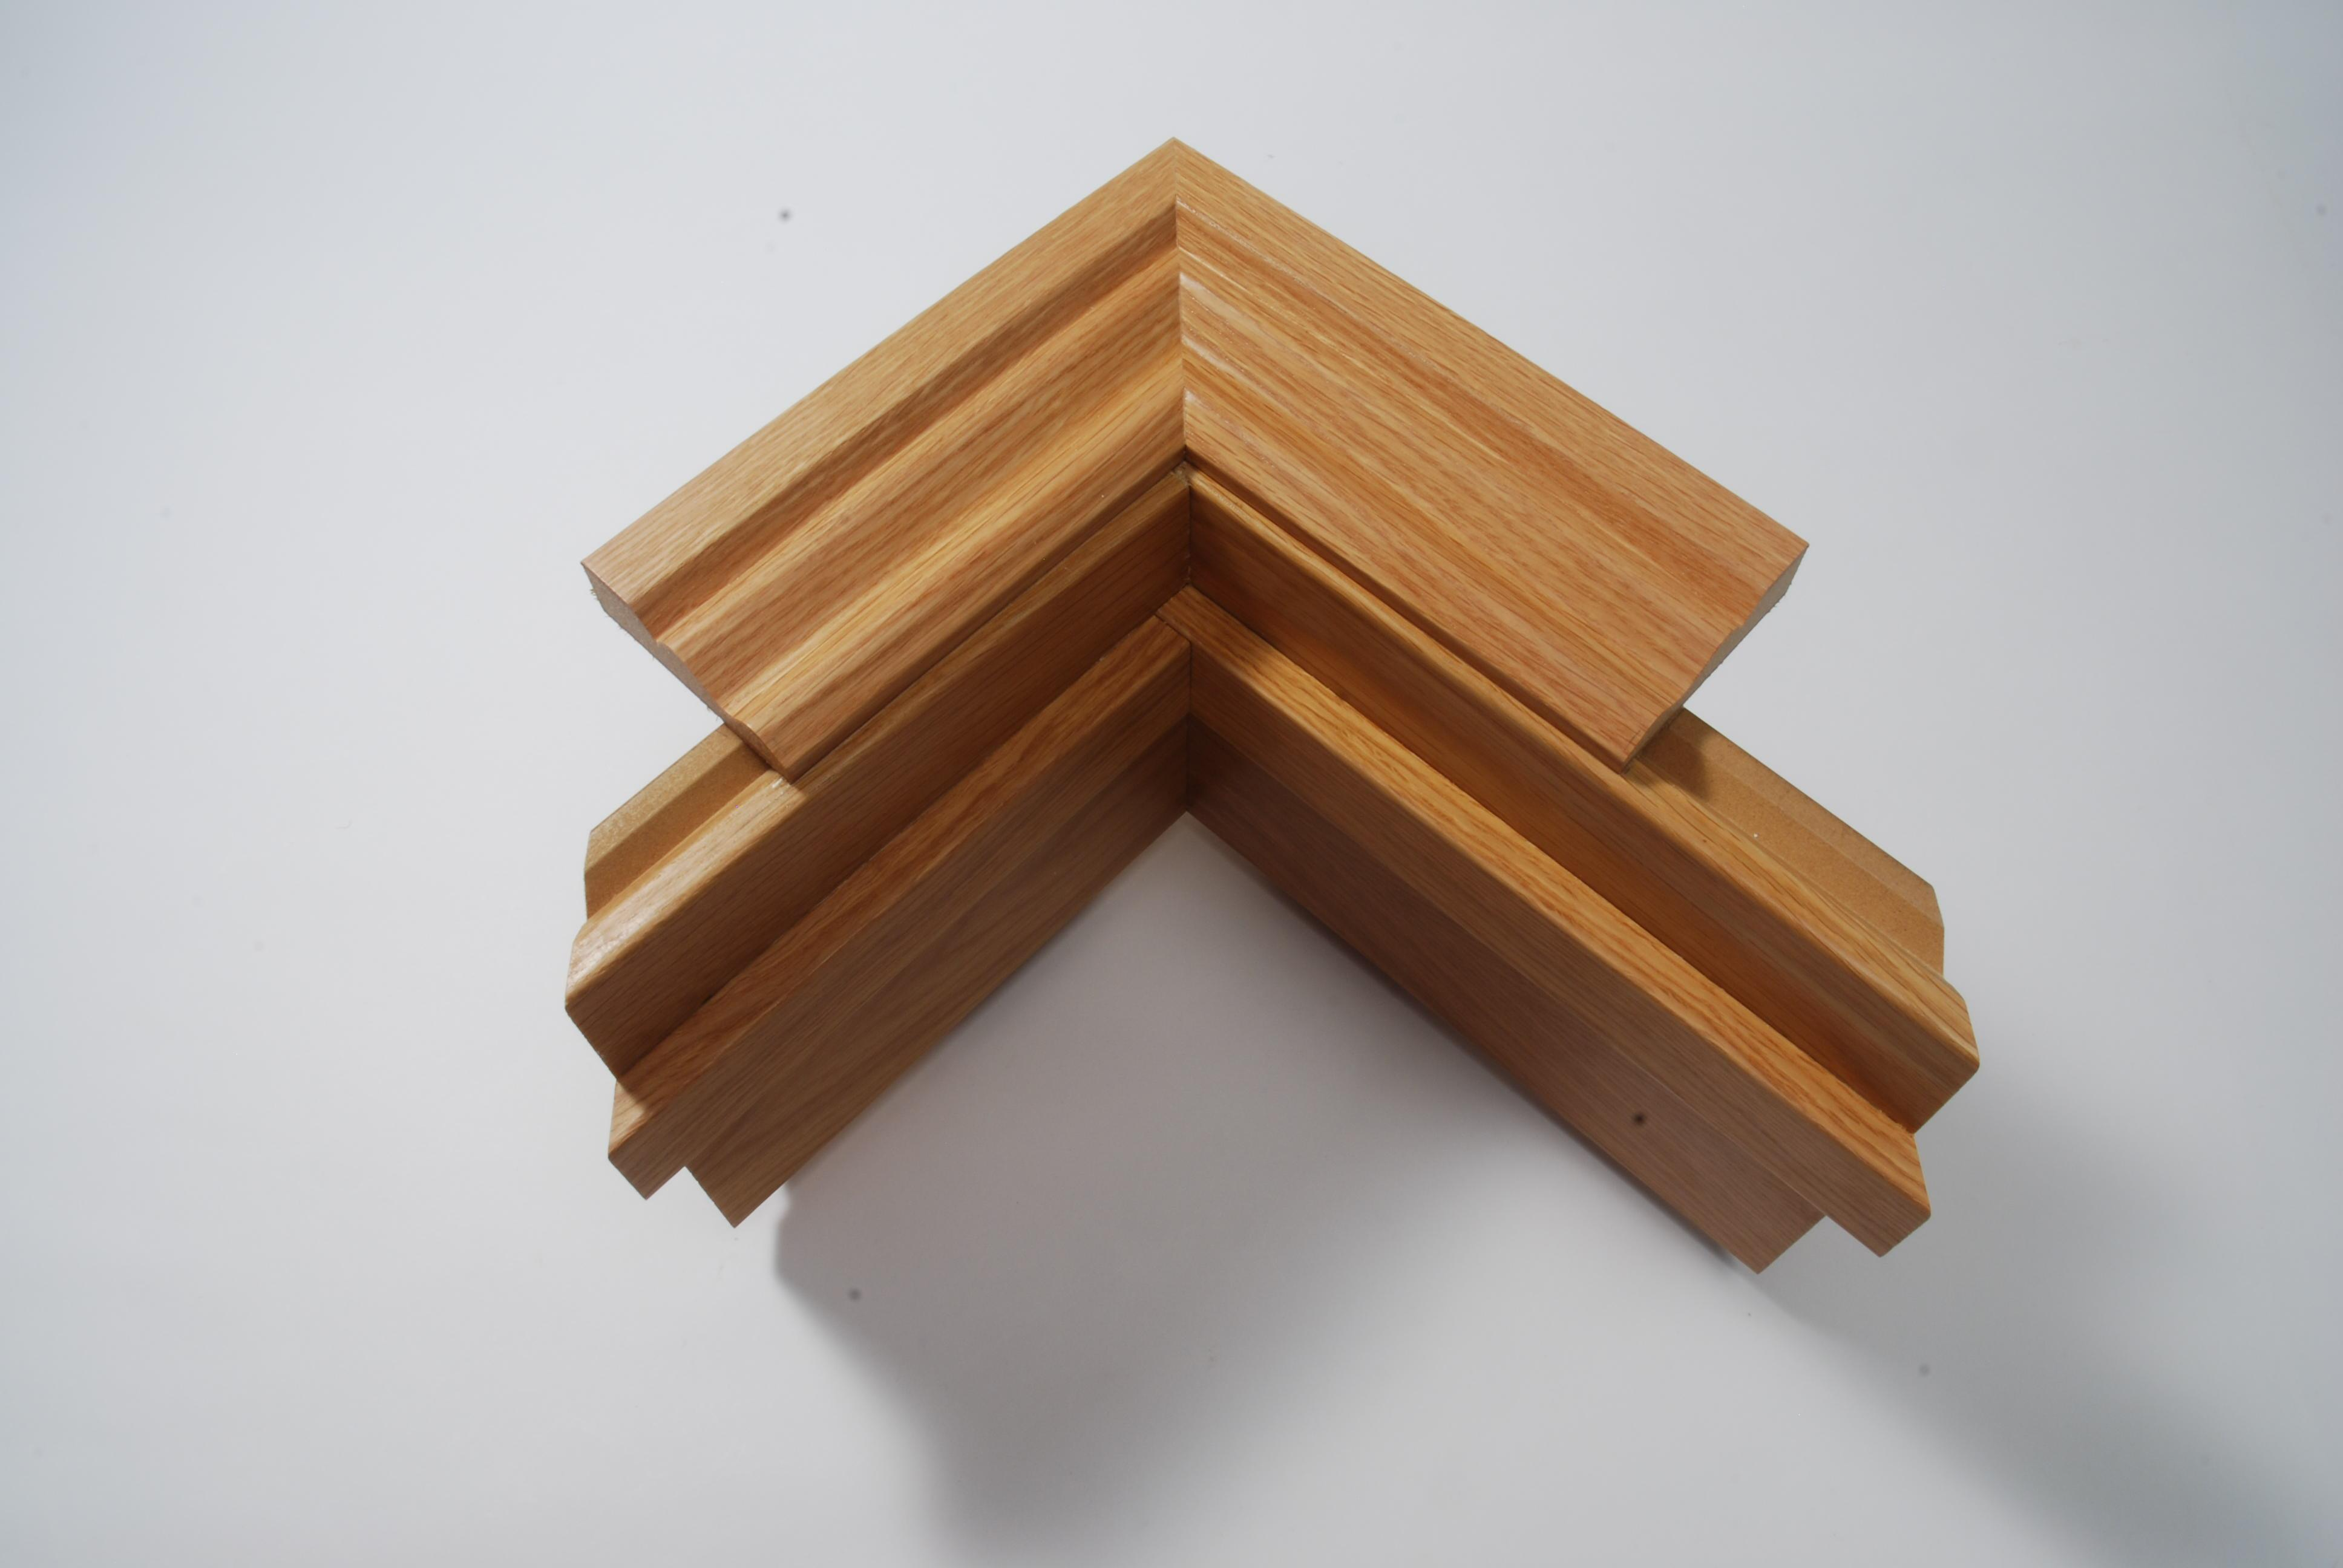 Fire Fully Adjustable Door Lining Set 30mm x 88 - 155mm Veneered American White Oak (Special Offer)